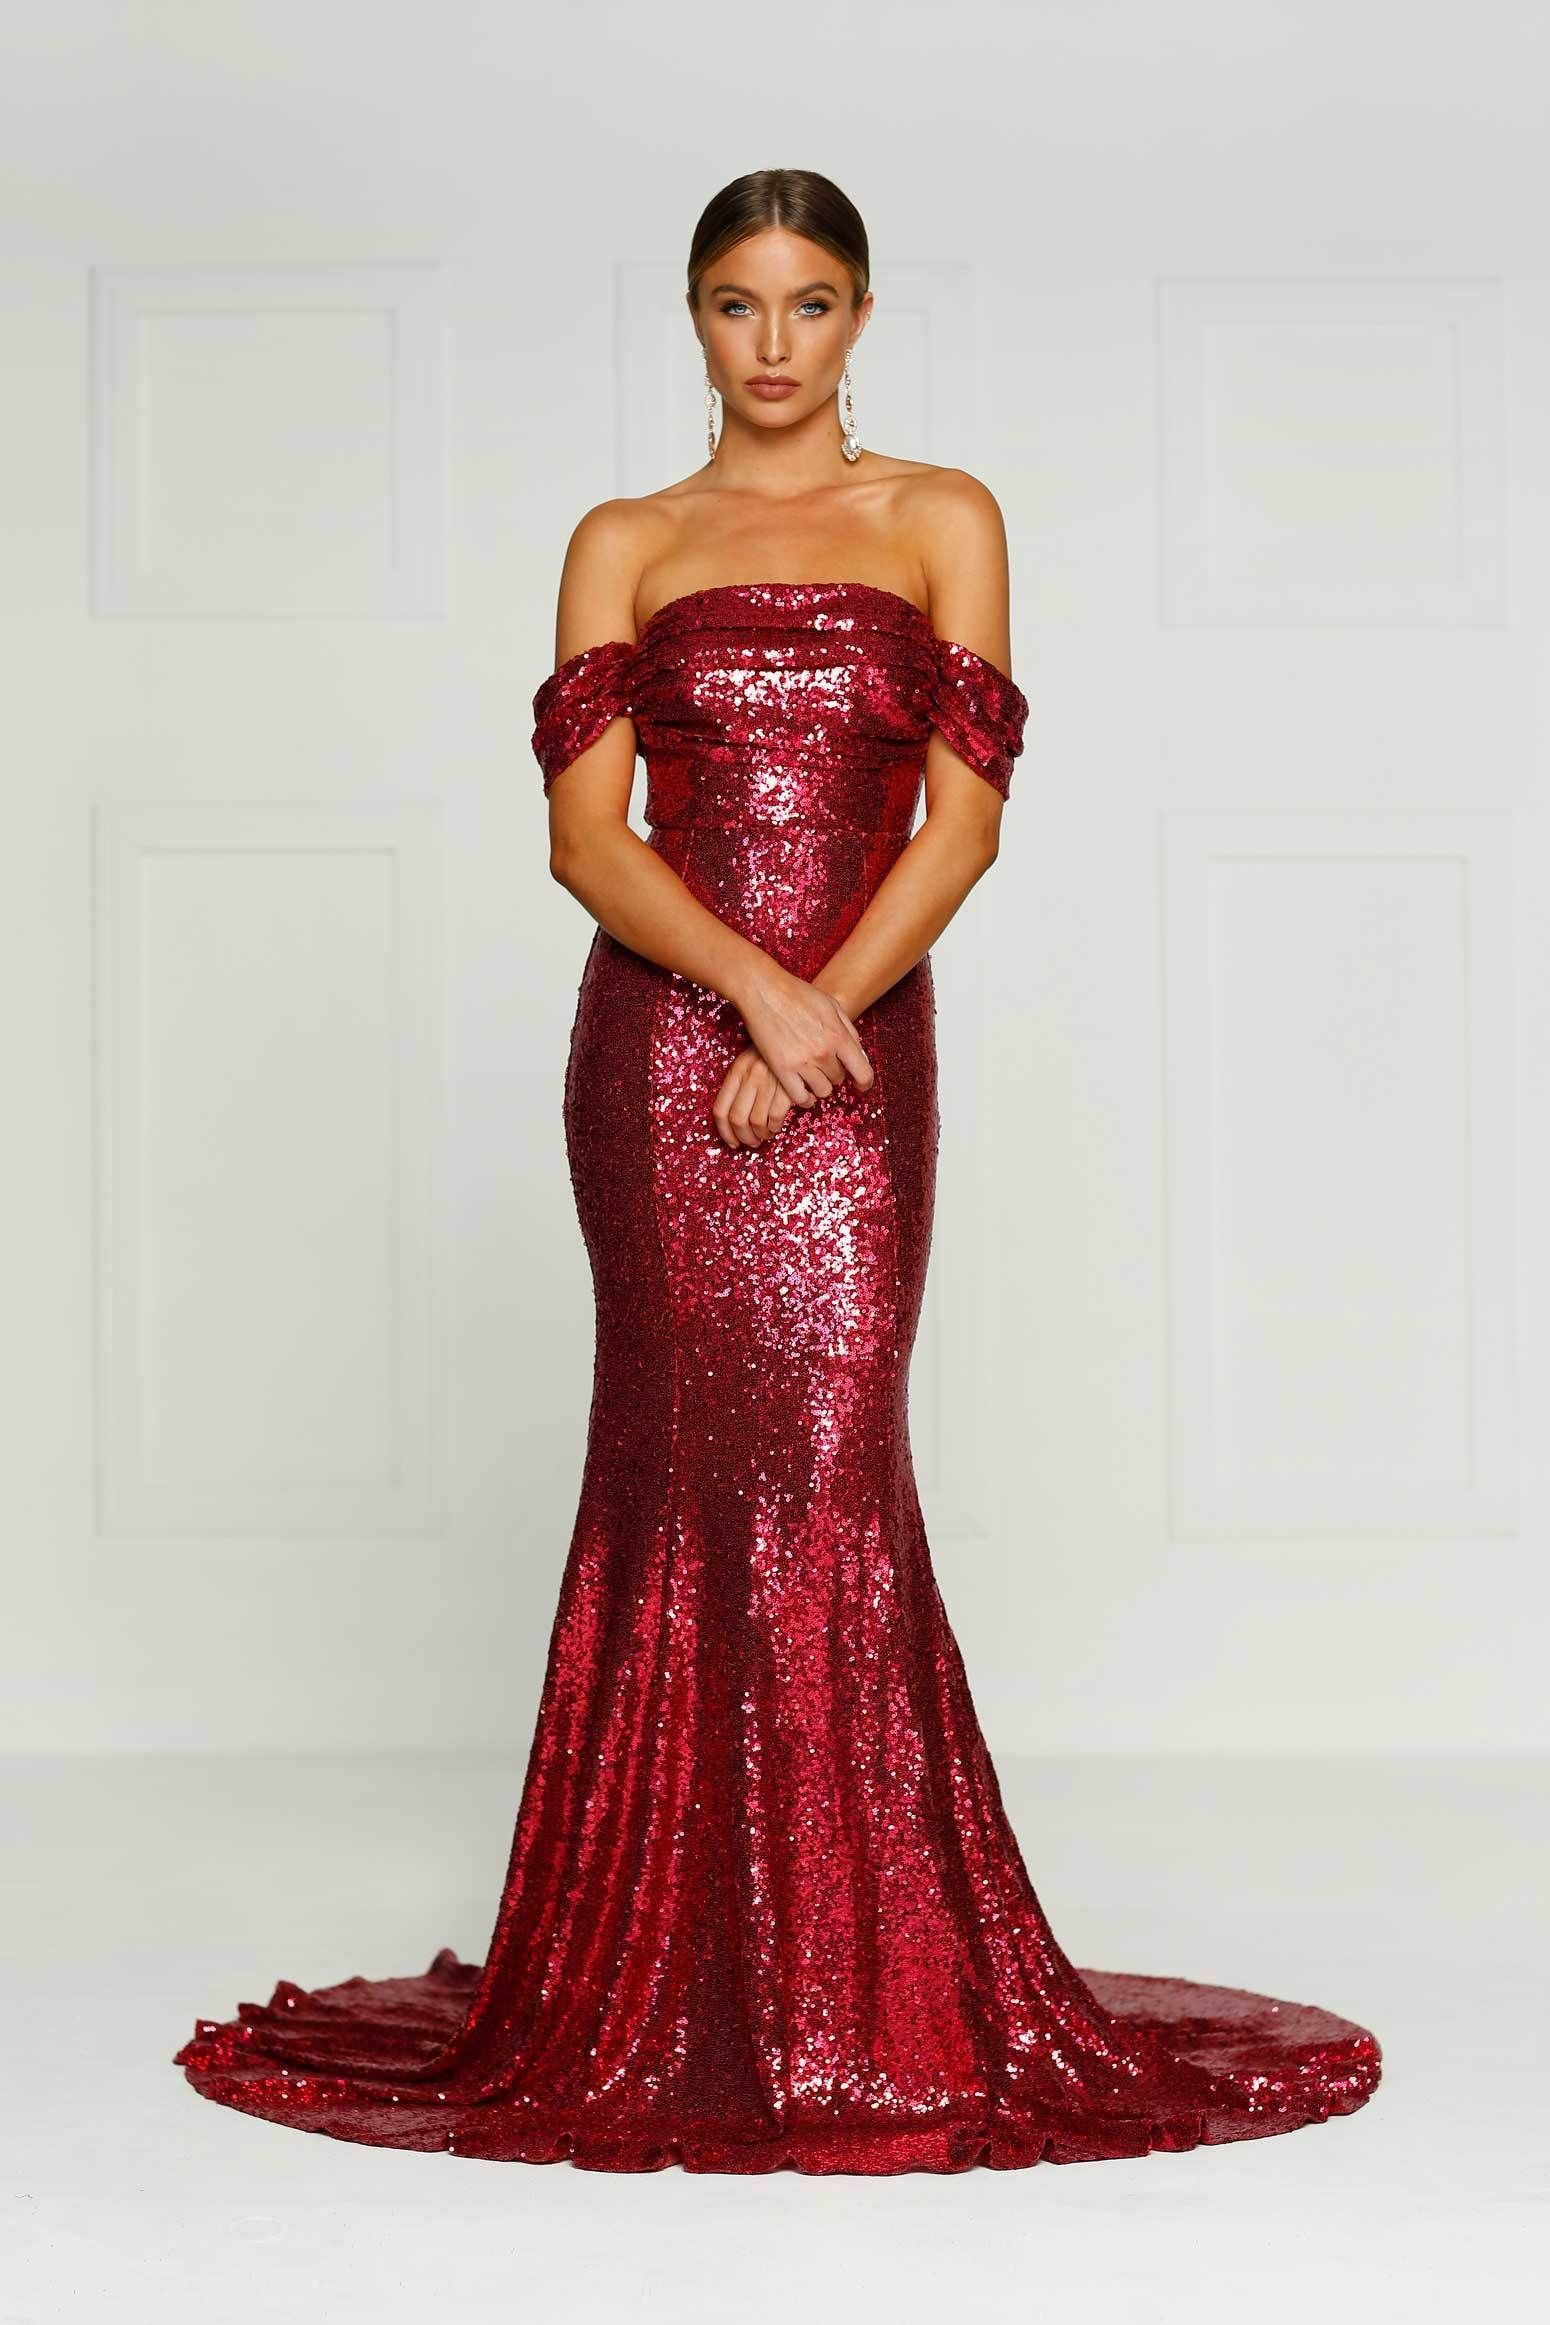 Alamourthelabel Silicya Wine Red Sophie Applegarth Product Page Https Www Alamourthelabel Com Collections Long Sparkly Dresses Red Sparkly Dress Dresses [ 2325 x 1550 Pixel ]